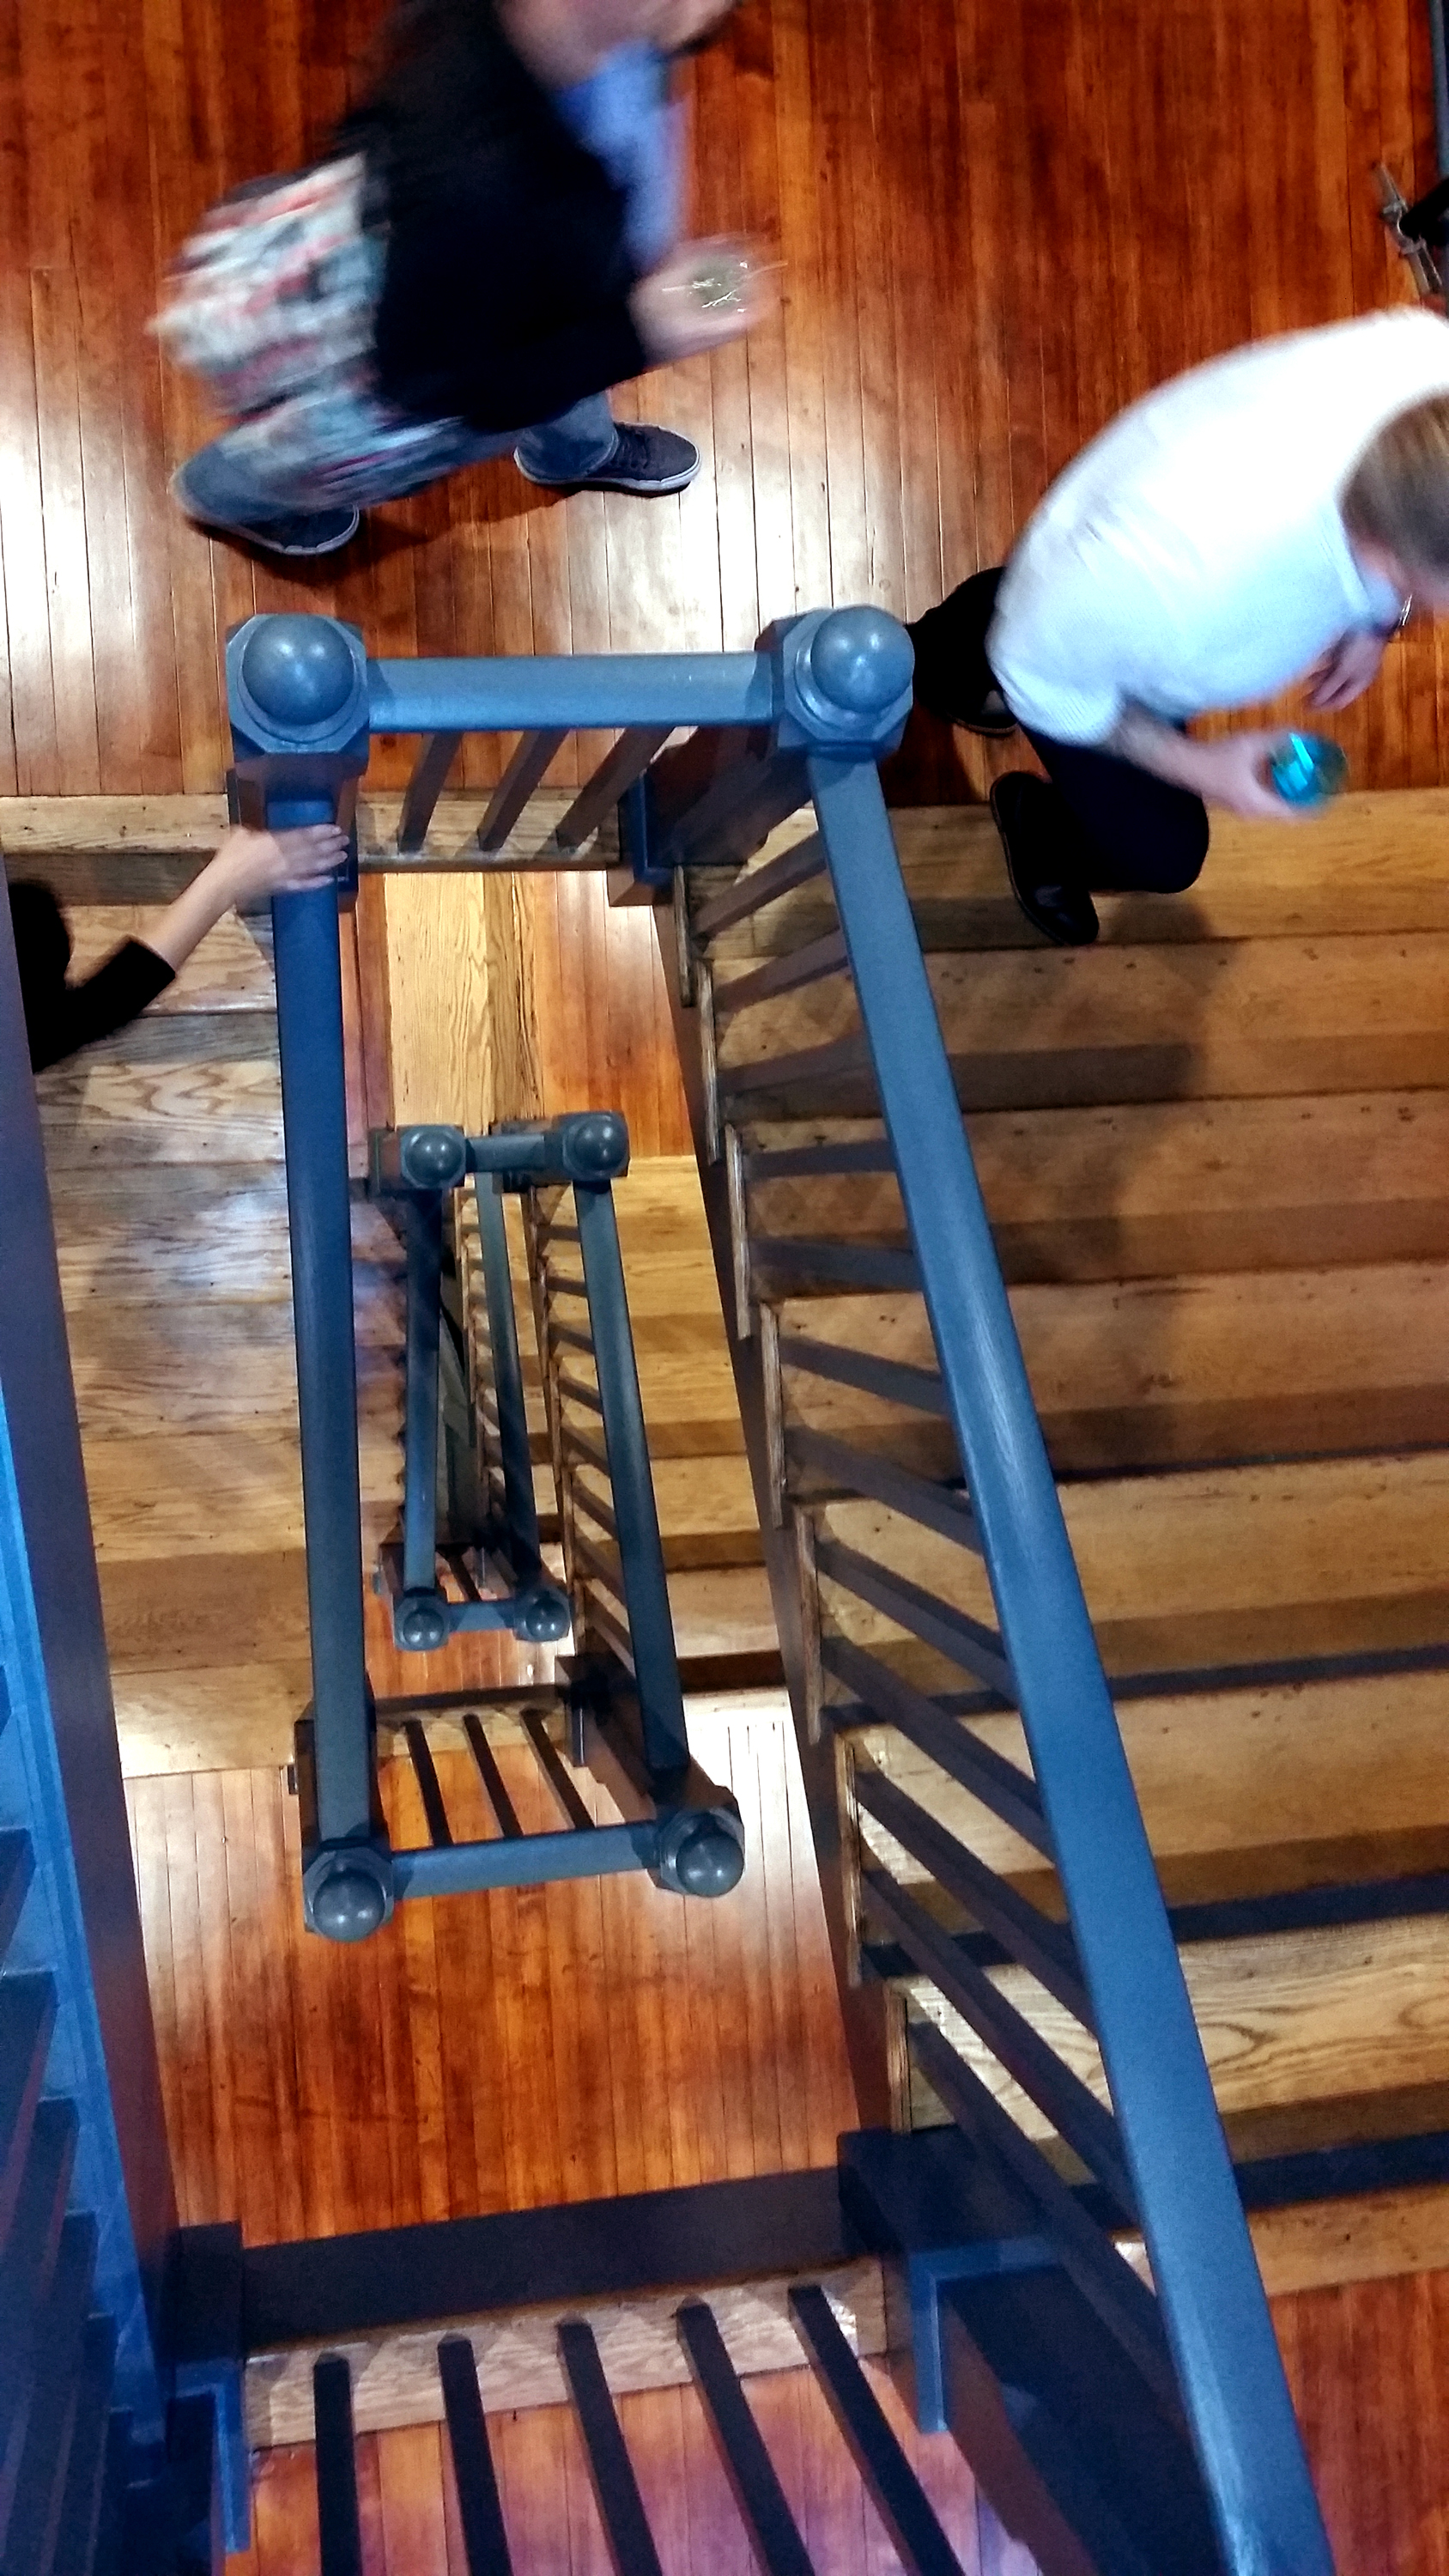 The original main staircase was repaired and refinished, then extended up to the third floor.